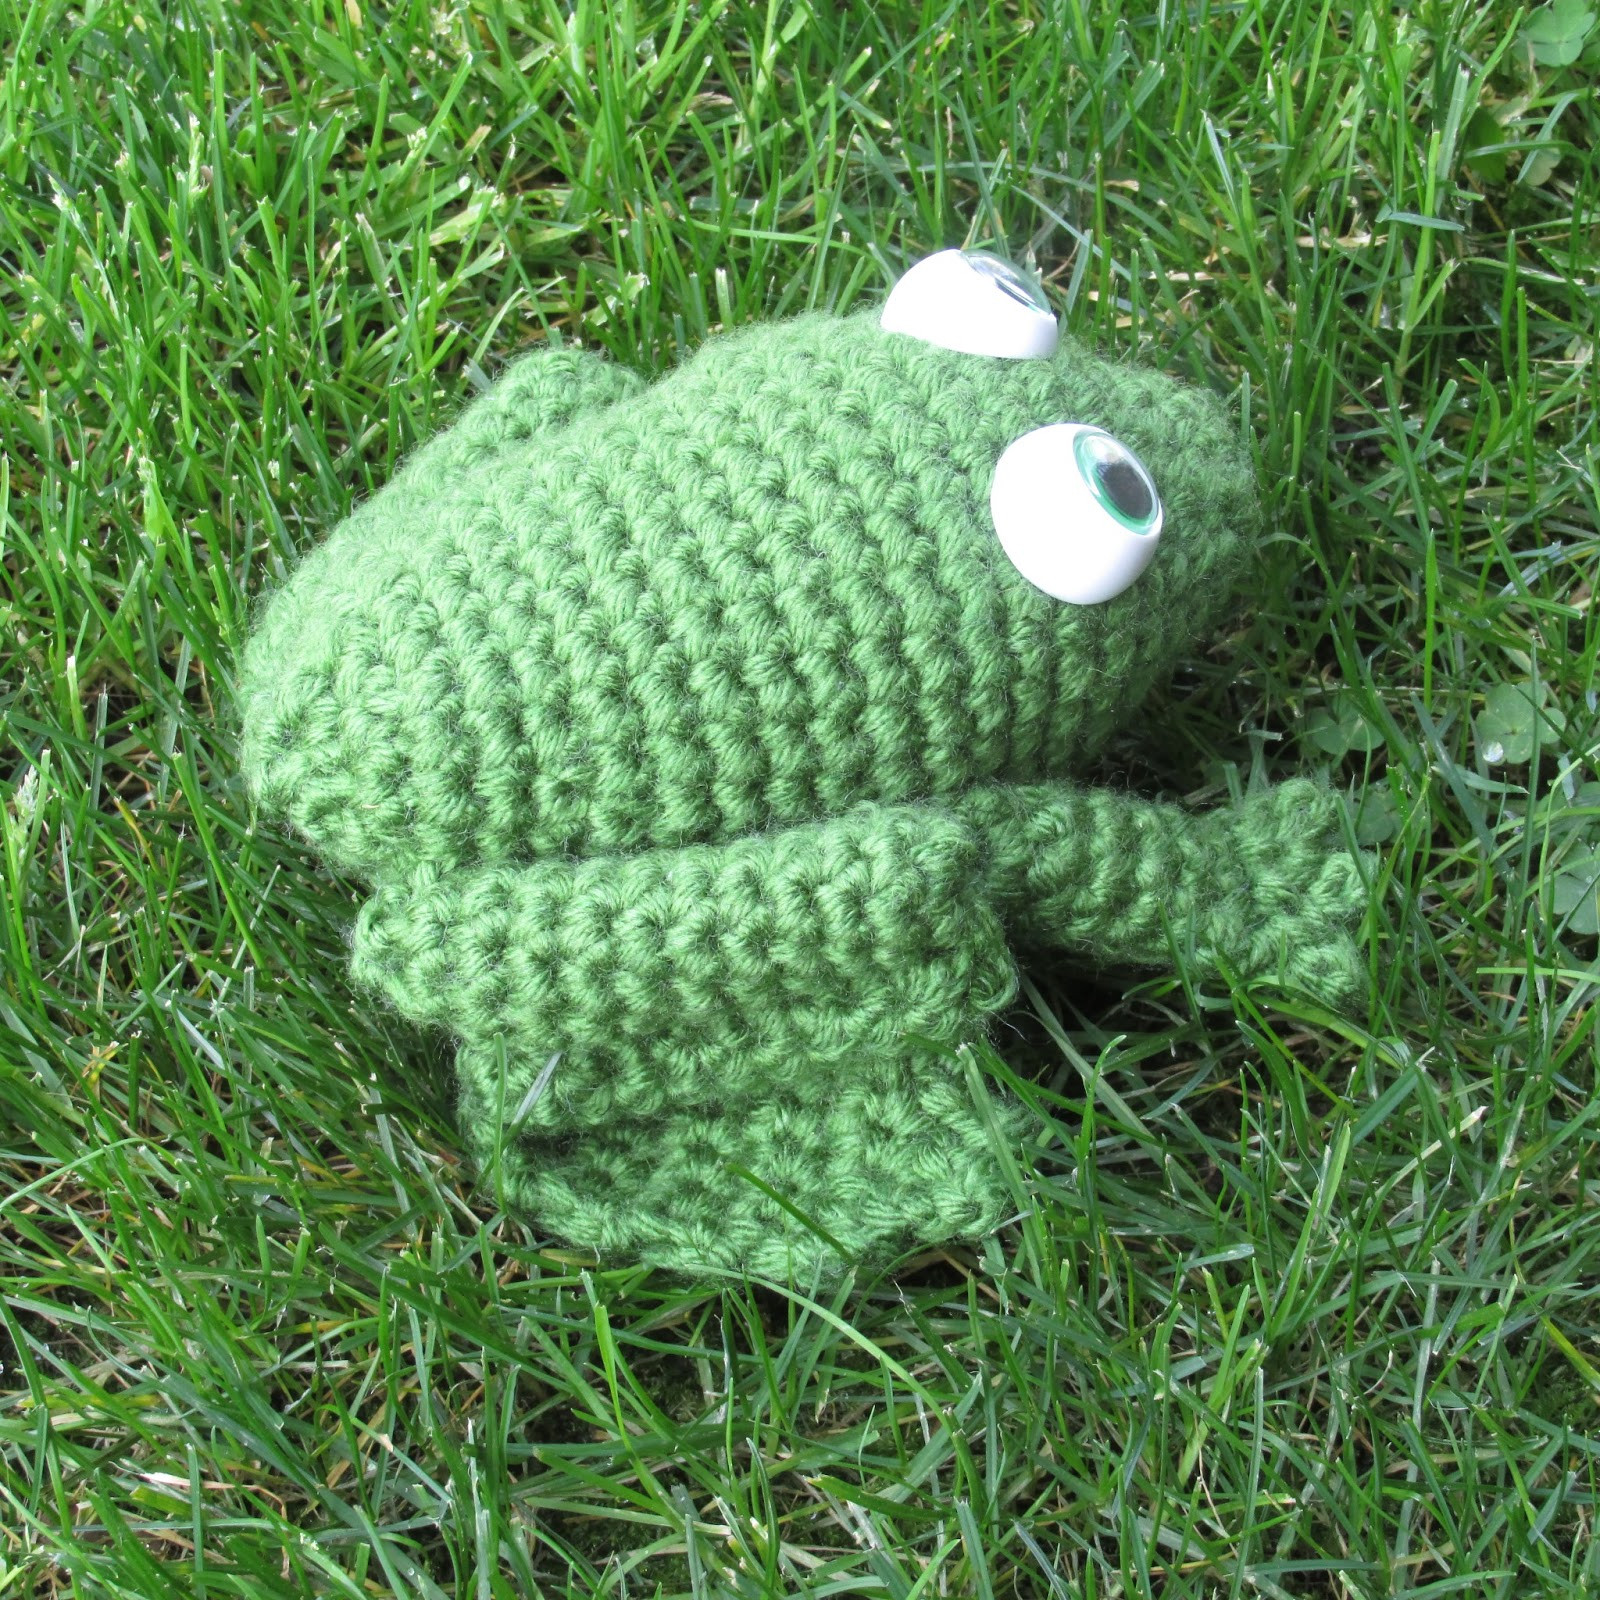 Crochet Frogs Inspirational Spiderling Dreams Free Crochet Bullfrog Pattern Of Superb 49 Pictures Crochet Frogs